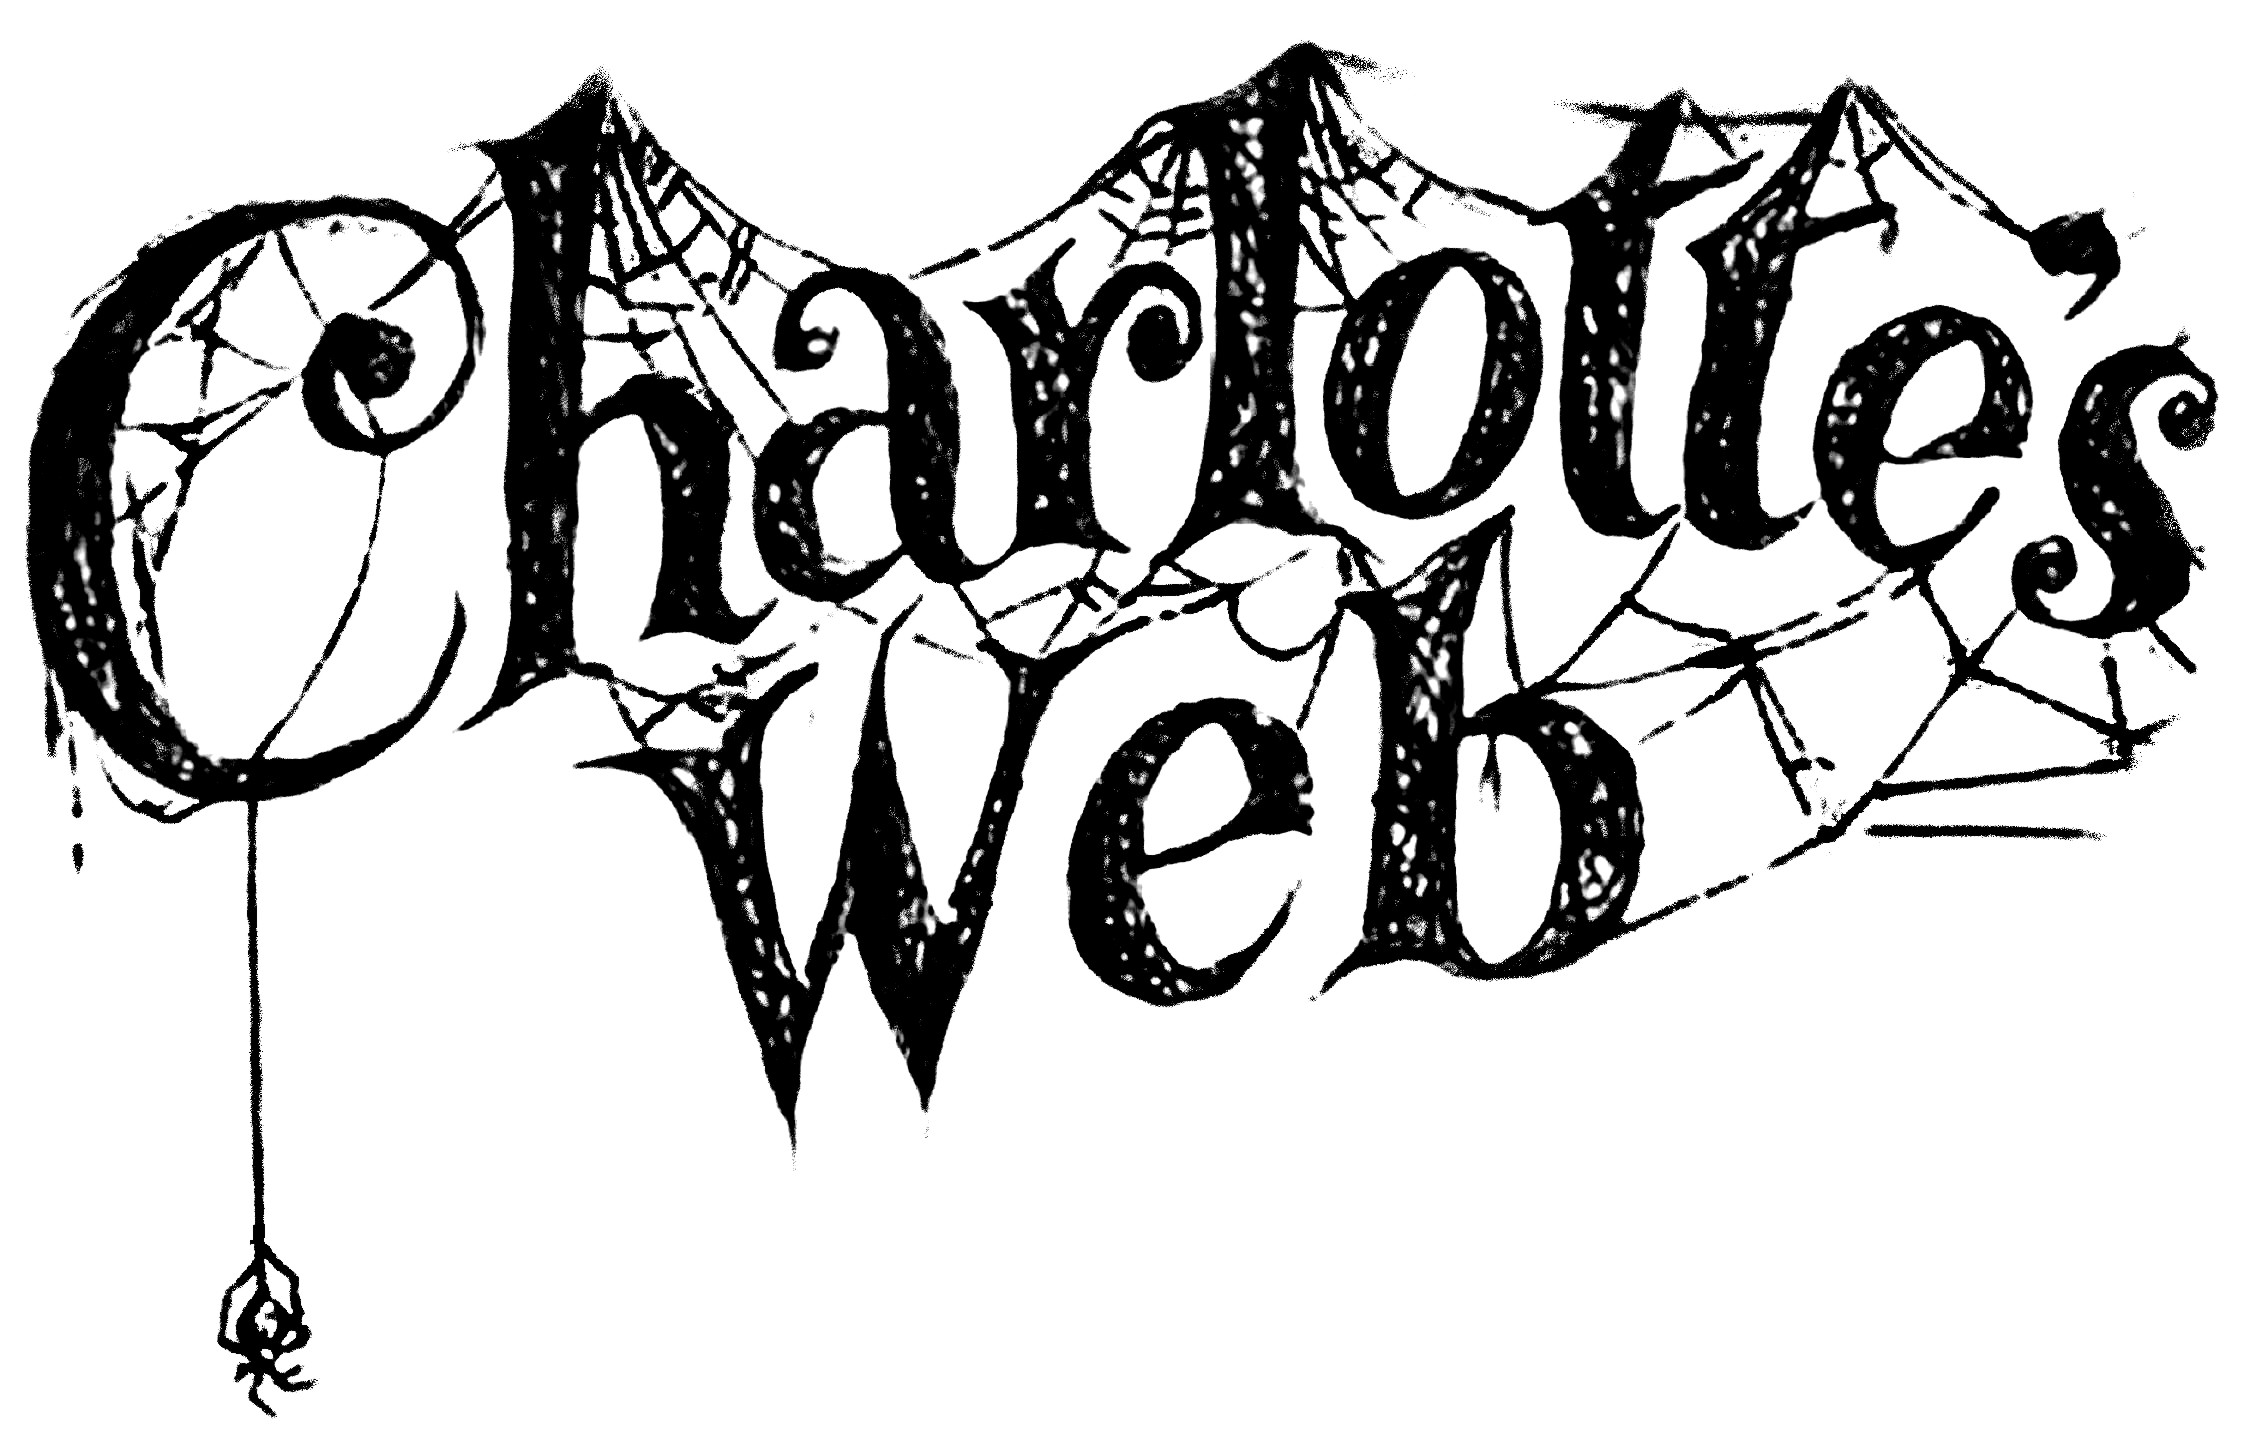 Tickets For Charlotte S Web In Alabama City From Showclix